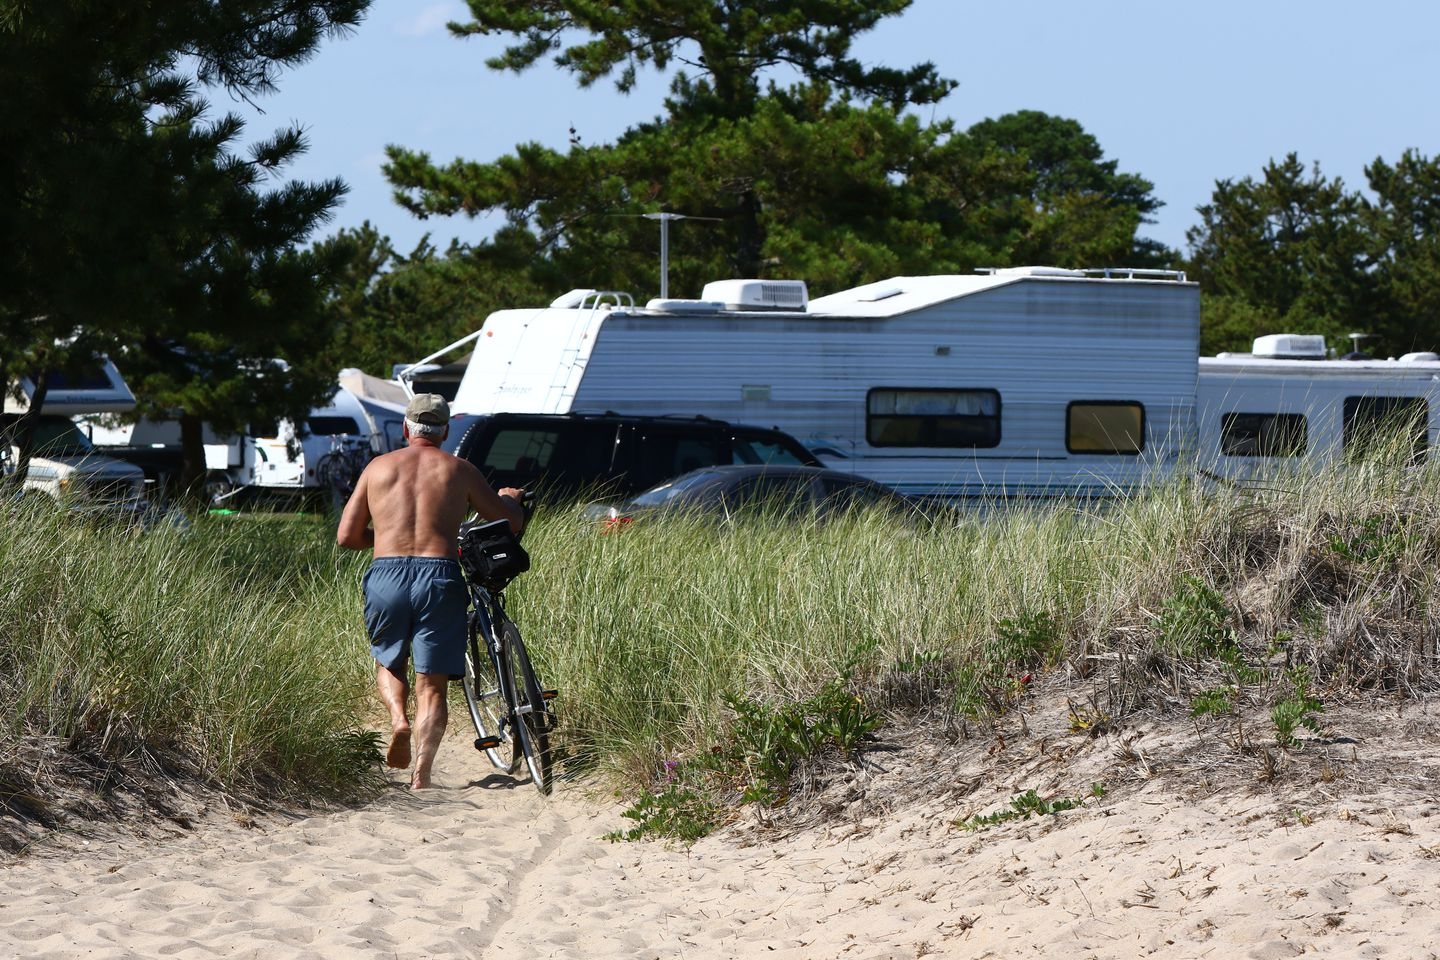 Salisbury Beach State Reservation has 484 camping spots with easy access to the water.